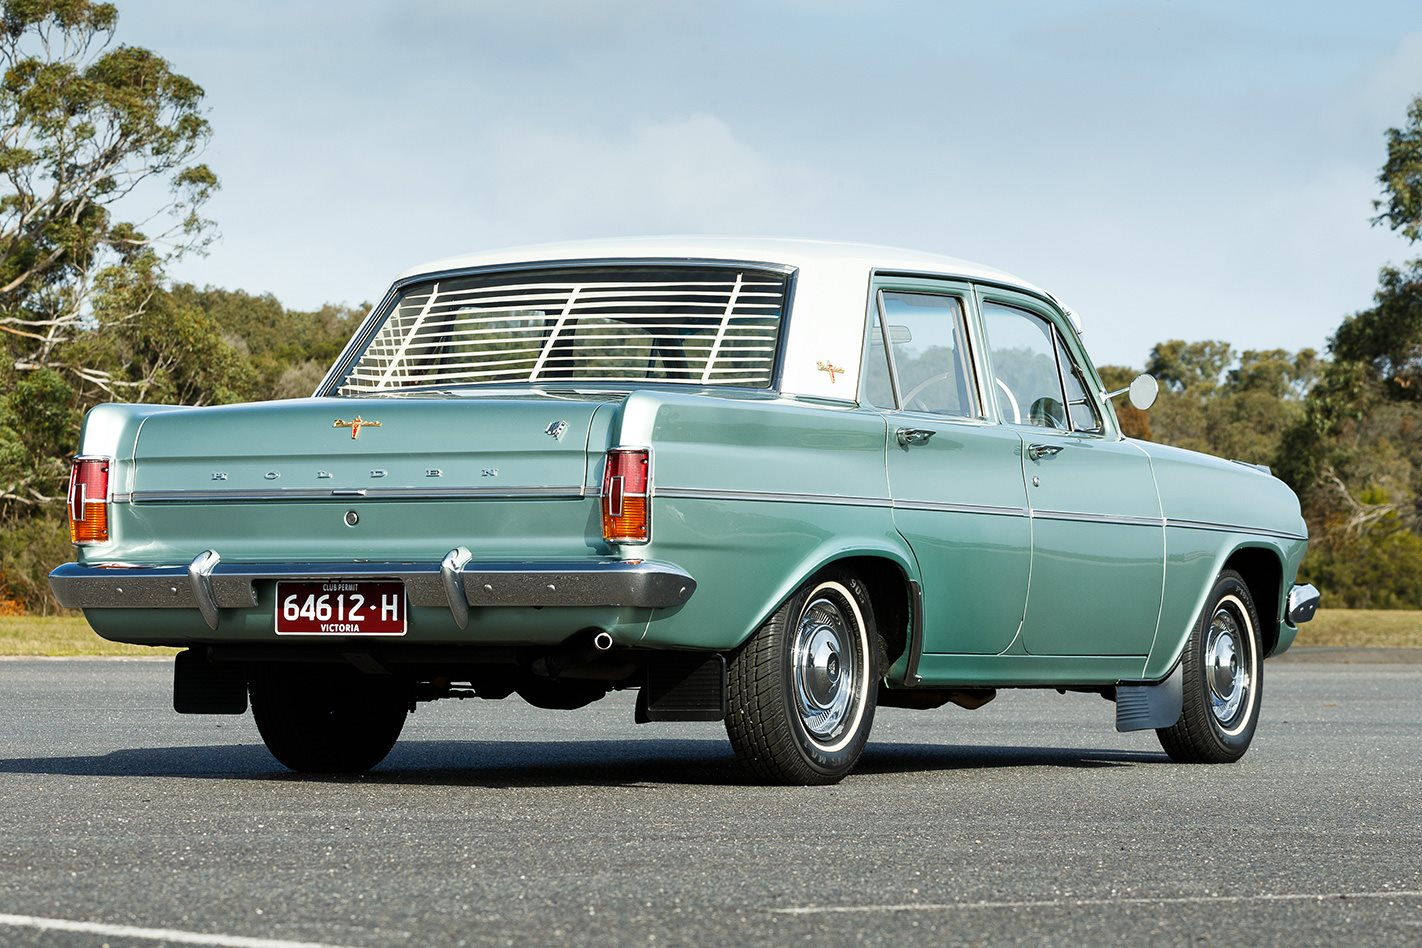 10 Holdens that mattered: One year on from Holden's Aussie factory